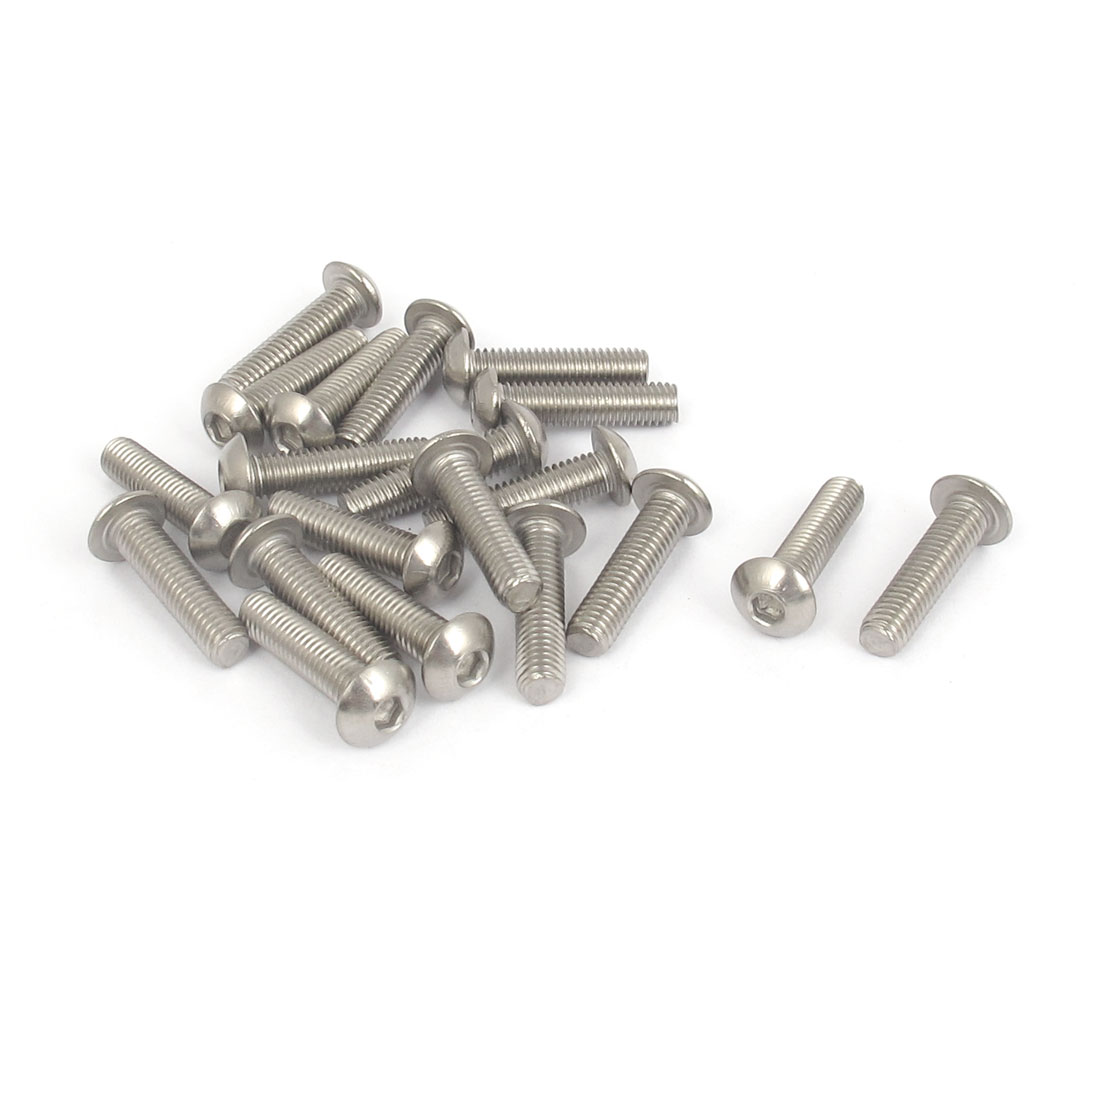 M5x20mm 304 Stainless Steel Hex Socket Machine Countersunk Round Head Screw Bolts 20PCS